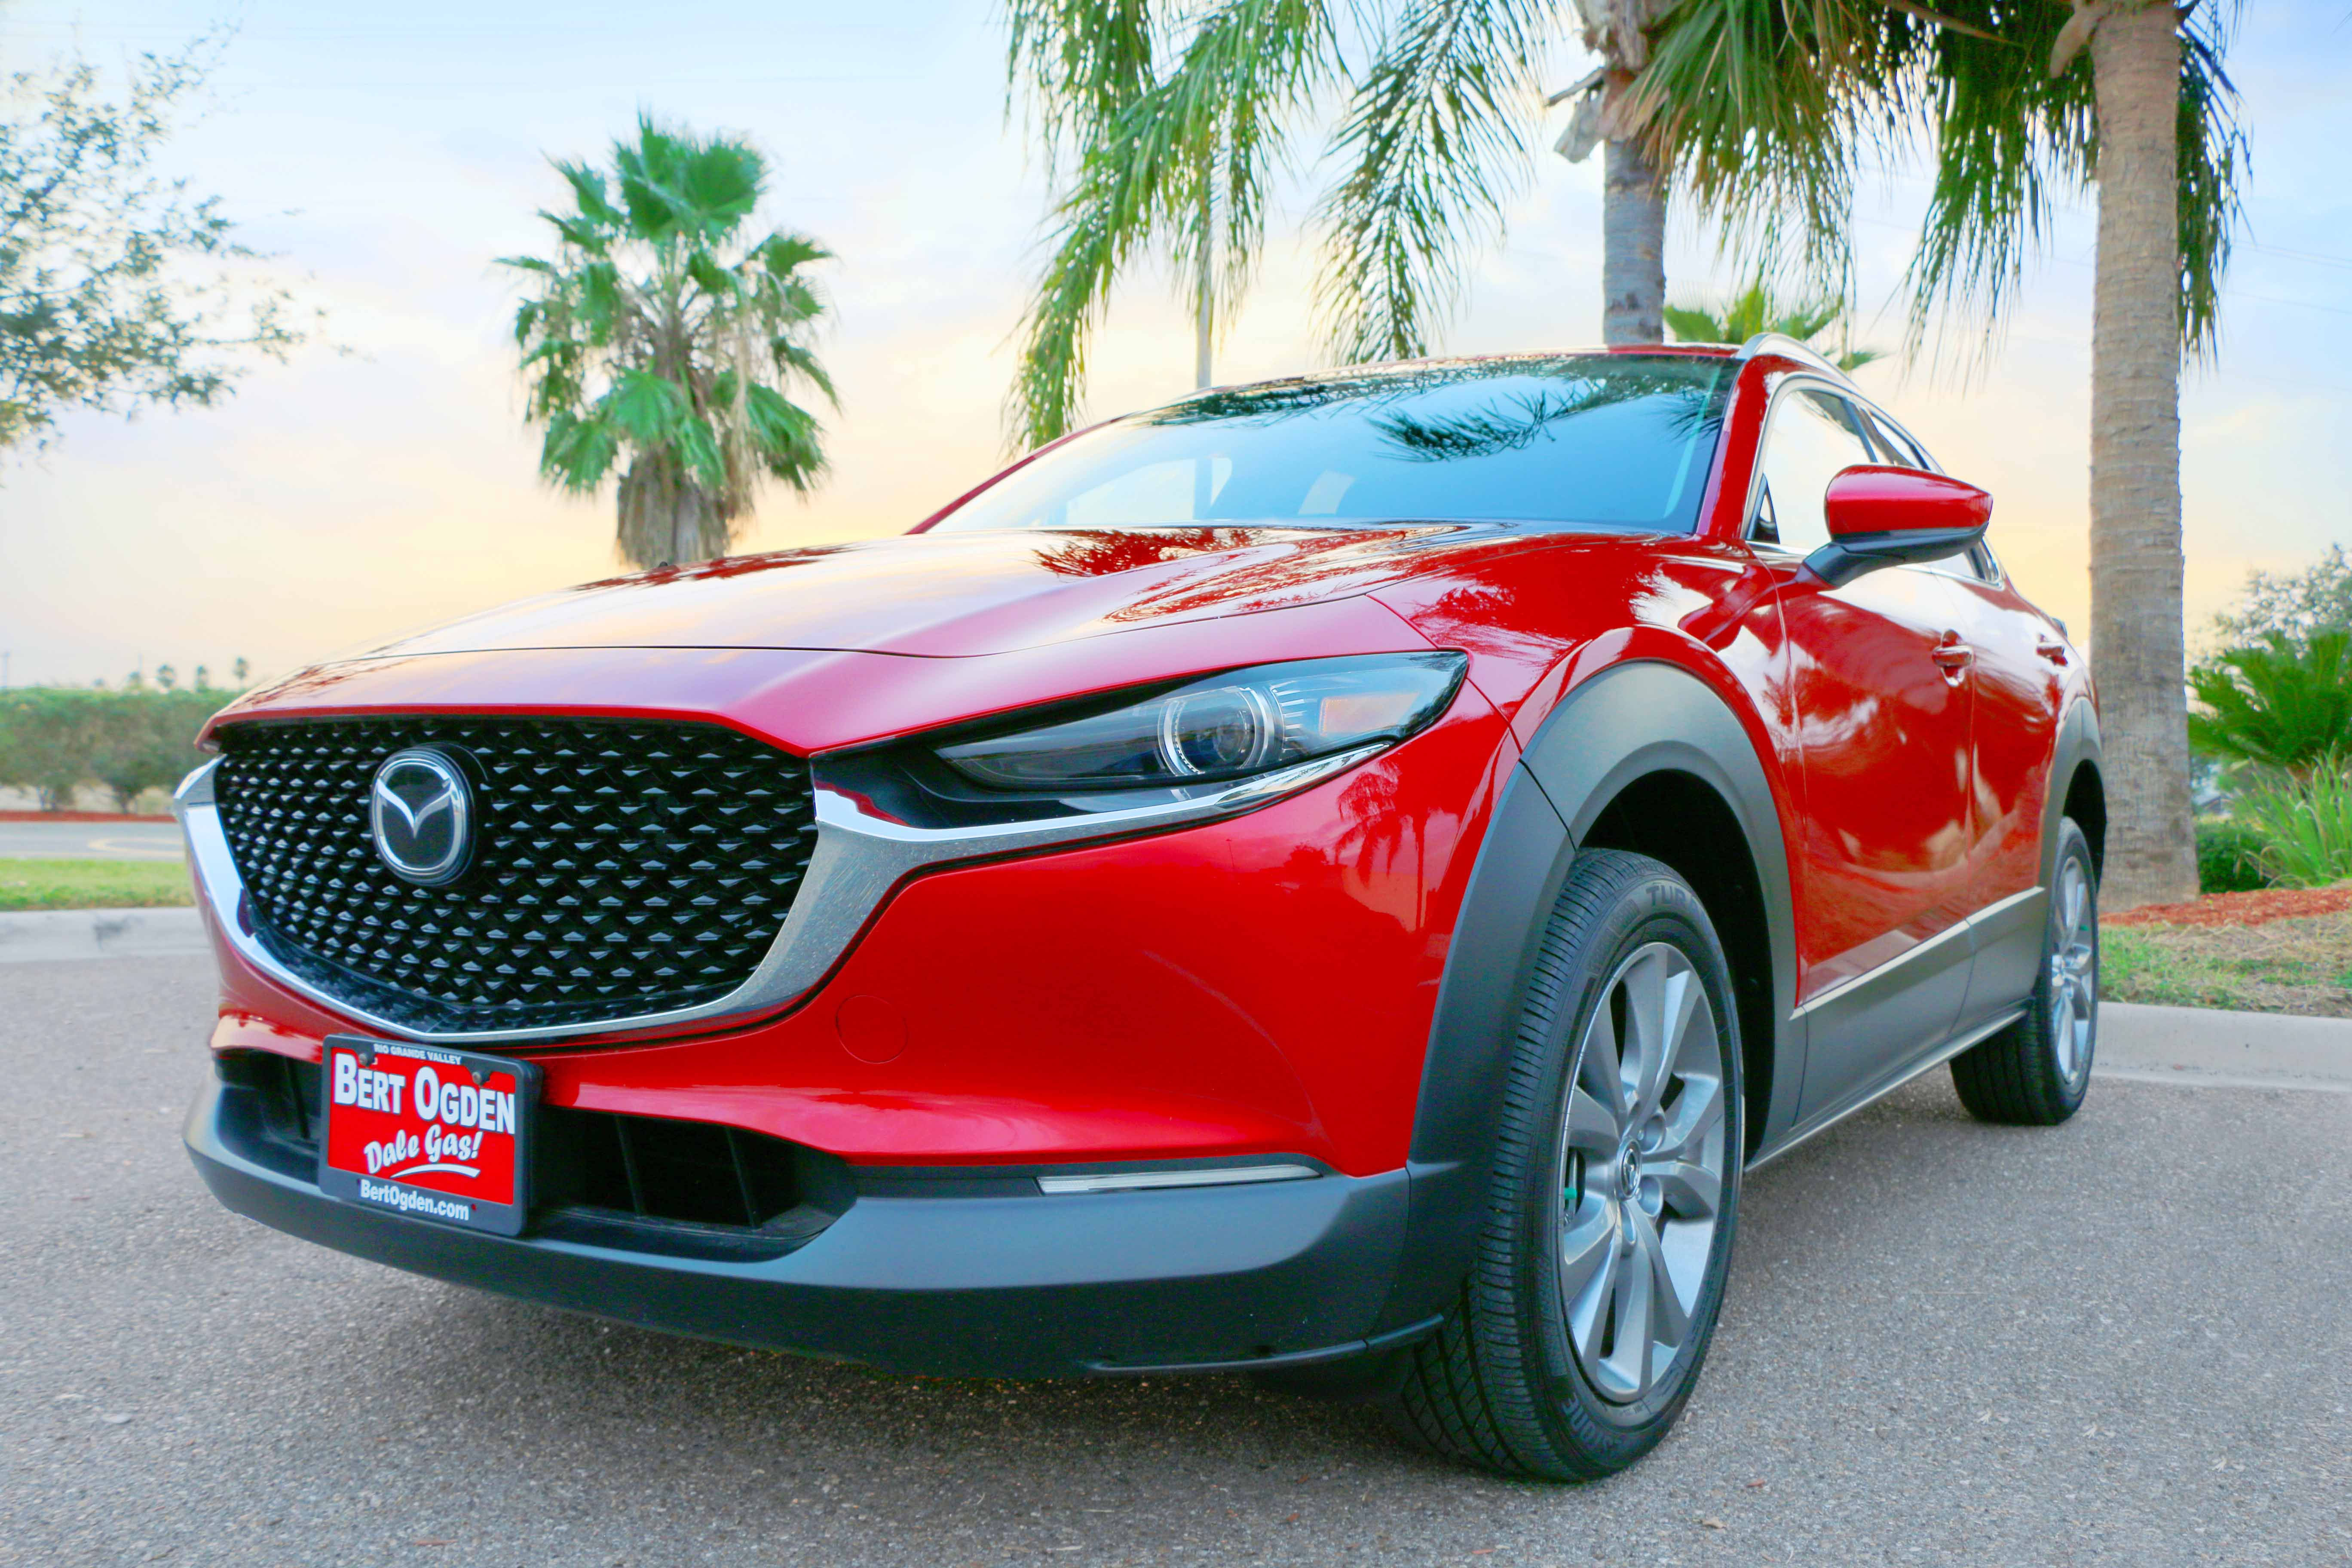 front view of Mazda CX-30 parked in front of palm trees